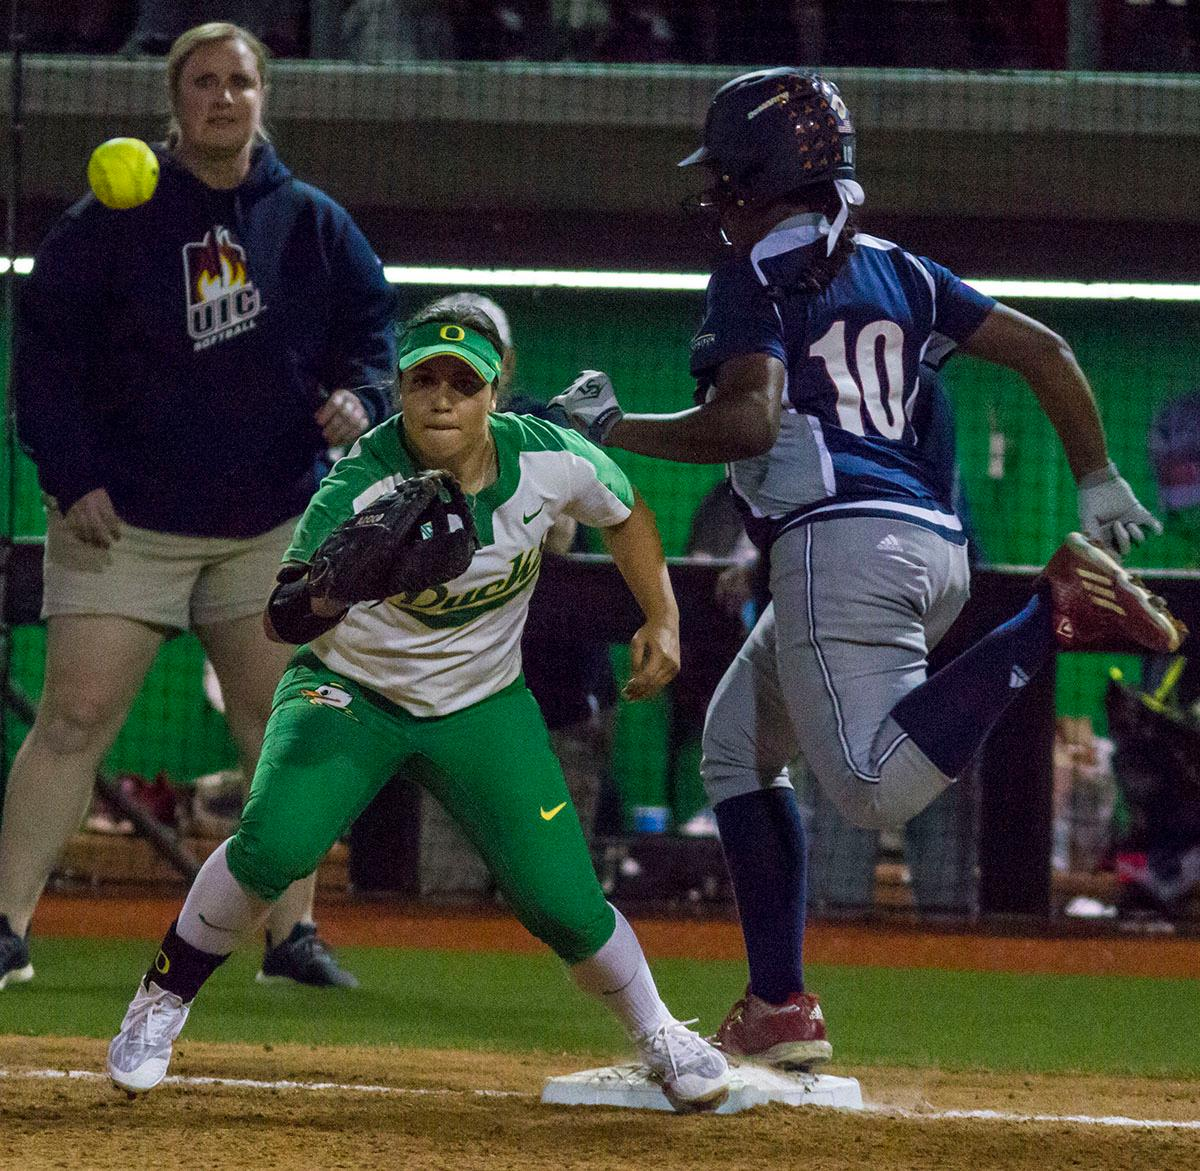 Tiana Mack-Miller (#10) crosses first base for UIC's first hit of the night. The No. 3 Oregon Ducks defeated the University of Illinois Chicago Flames 13-0 with the run-rule on Saturday night at Jane Sanders Stadium. The Ducks scored in every inning and then scored nine runs at the bottom of the fourth. The Oregon Ducks are now 22-0 in NCAA regional games. The Oregon Ducks play Wisconsin next on Saturday, May 20 at 2pm at Jane Sanders Stadium. Photo by Aaron Alter, Oregon News Lab